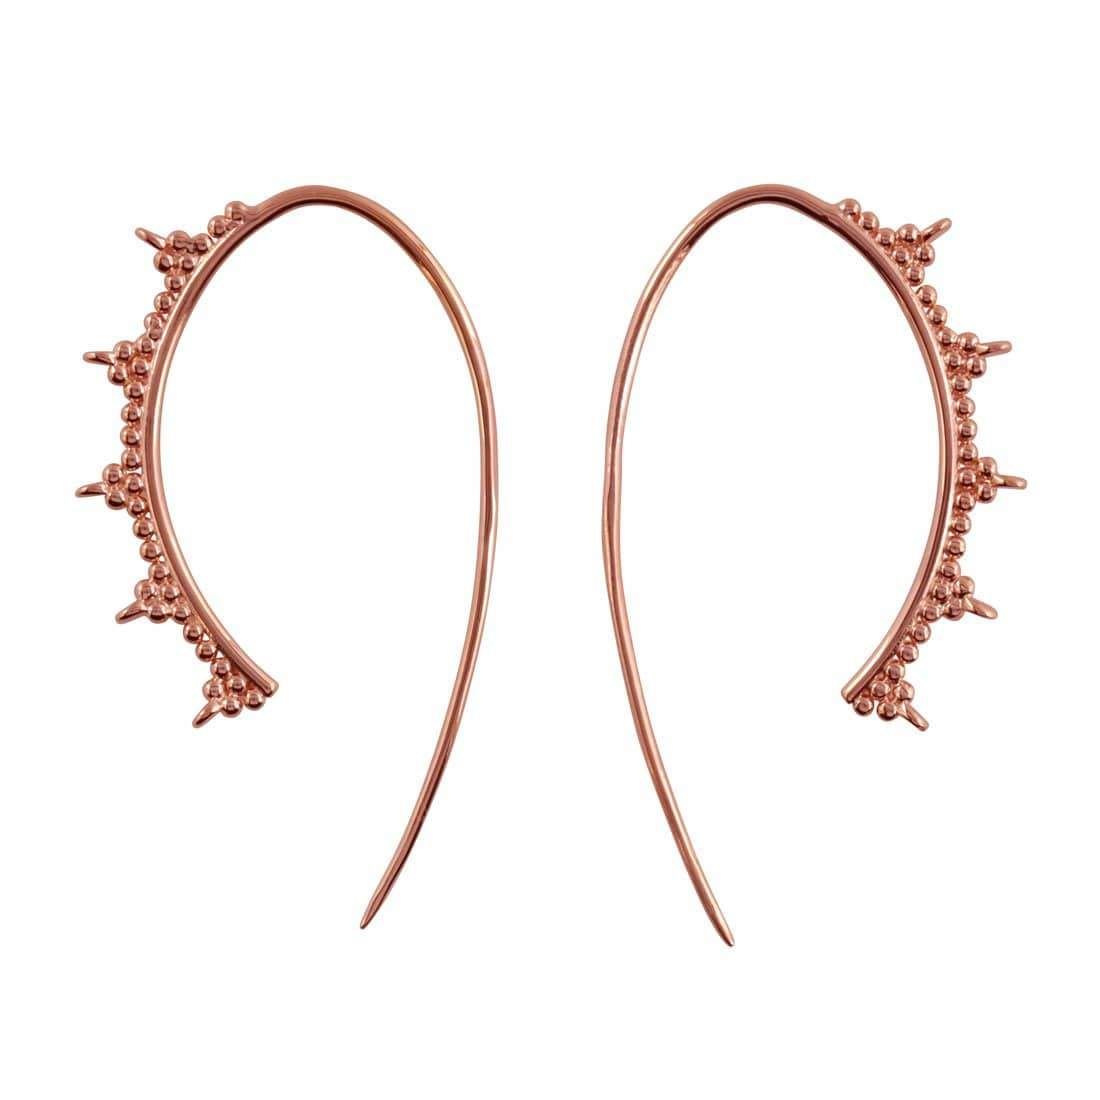 Midsummer Star Earrings Rose Gold Evoke Hoops